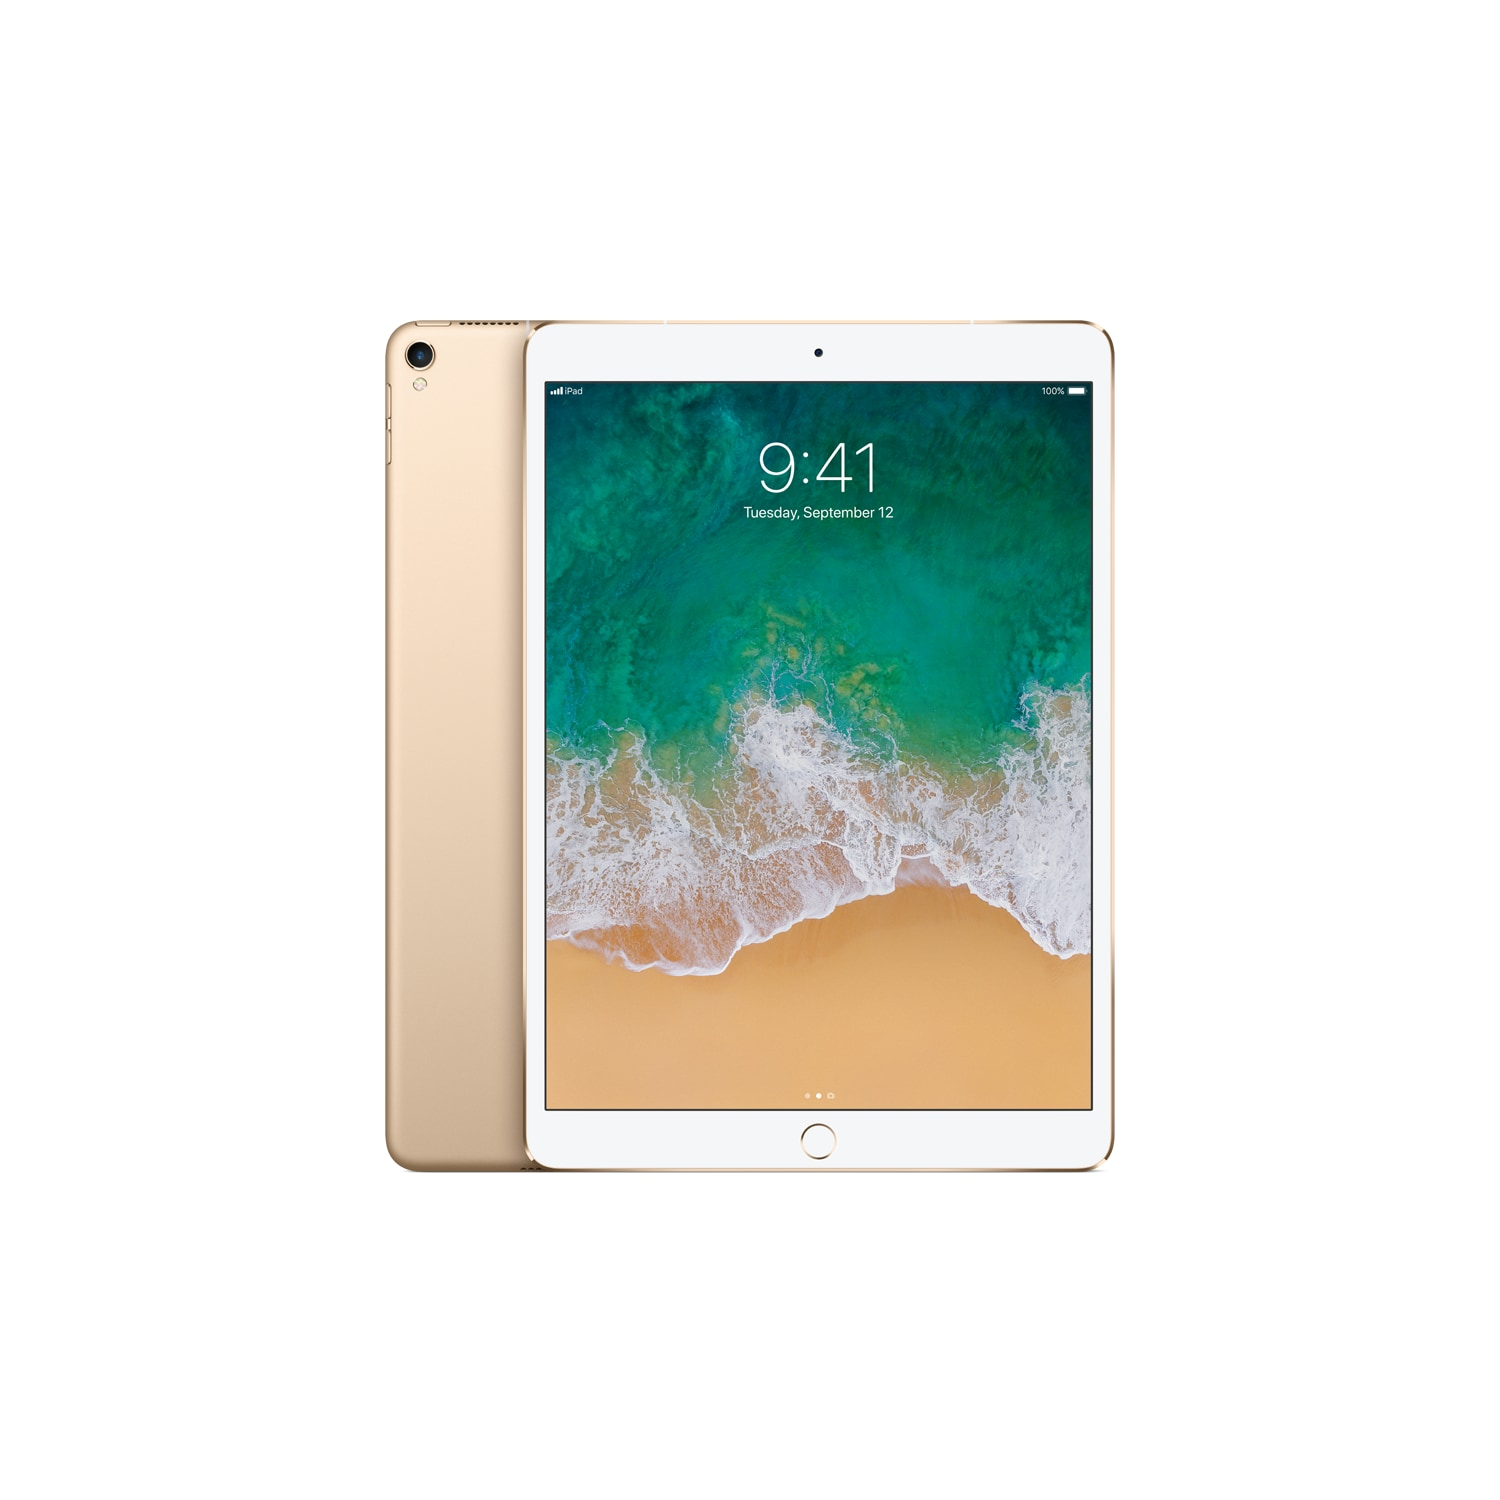 Tablet APPLE iPad Pro 10.5 Wi-Fi+Cellular 512GB Złoty MPMG2FD/A